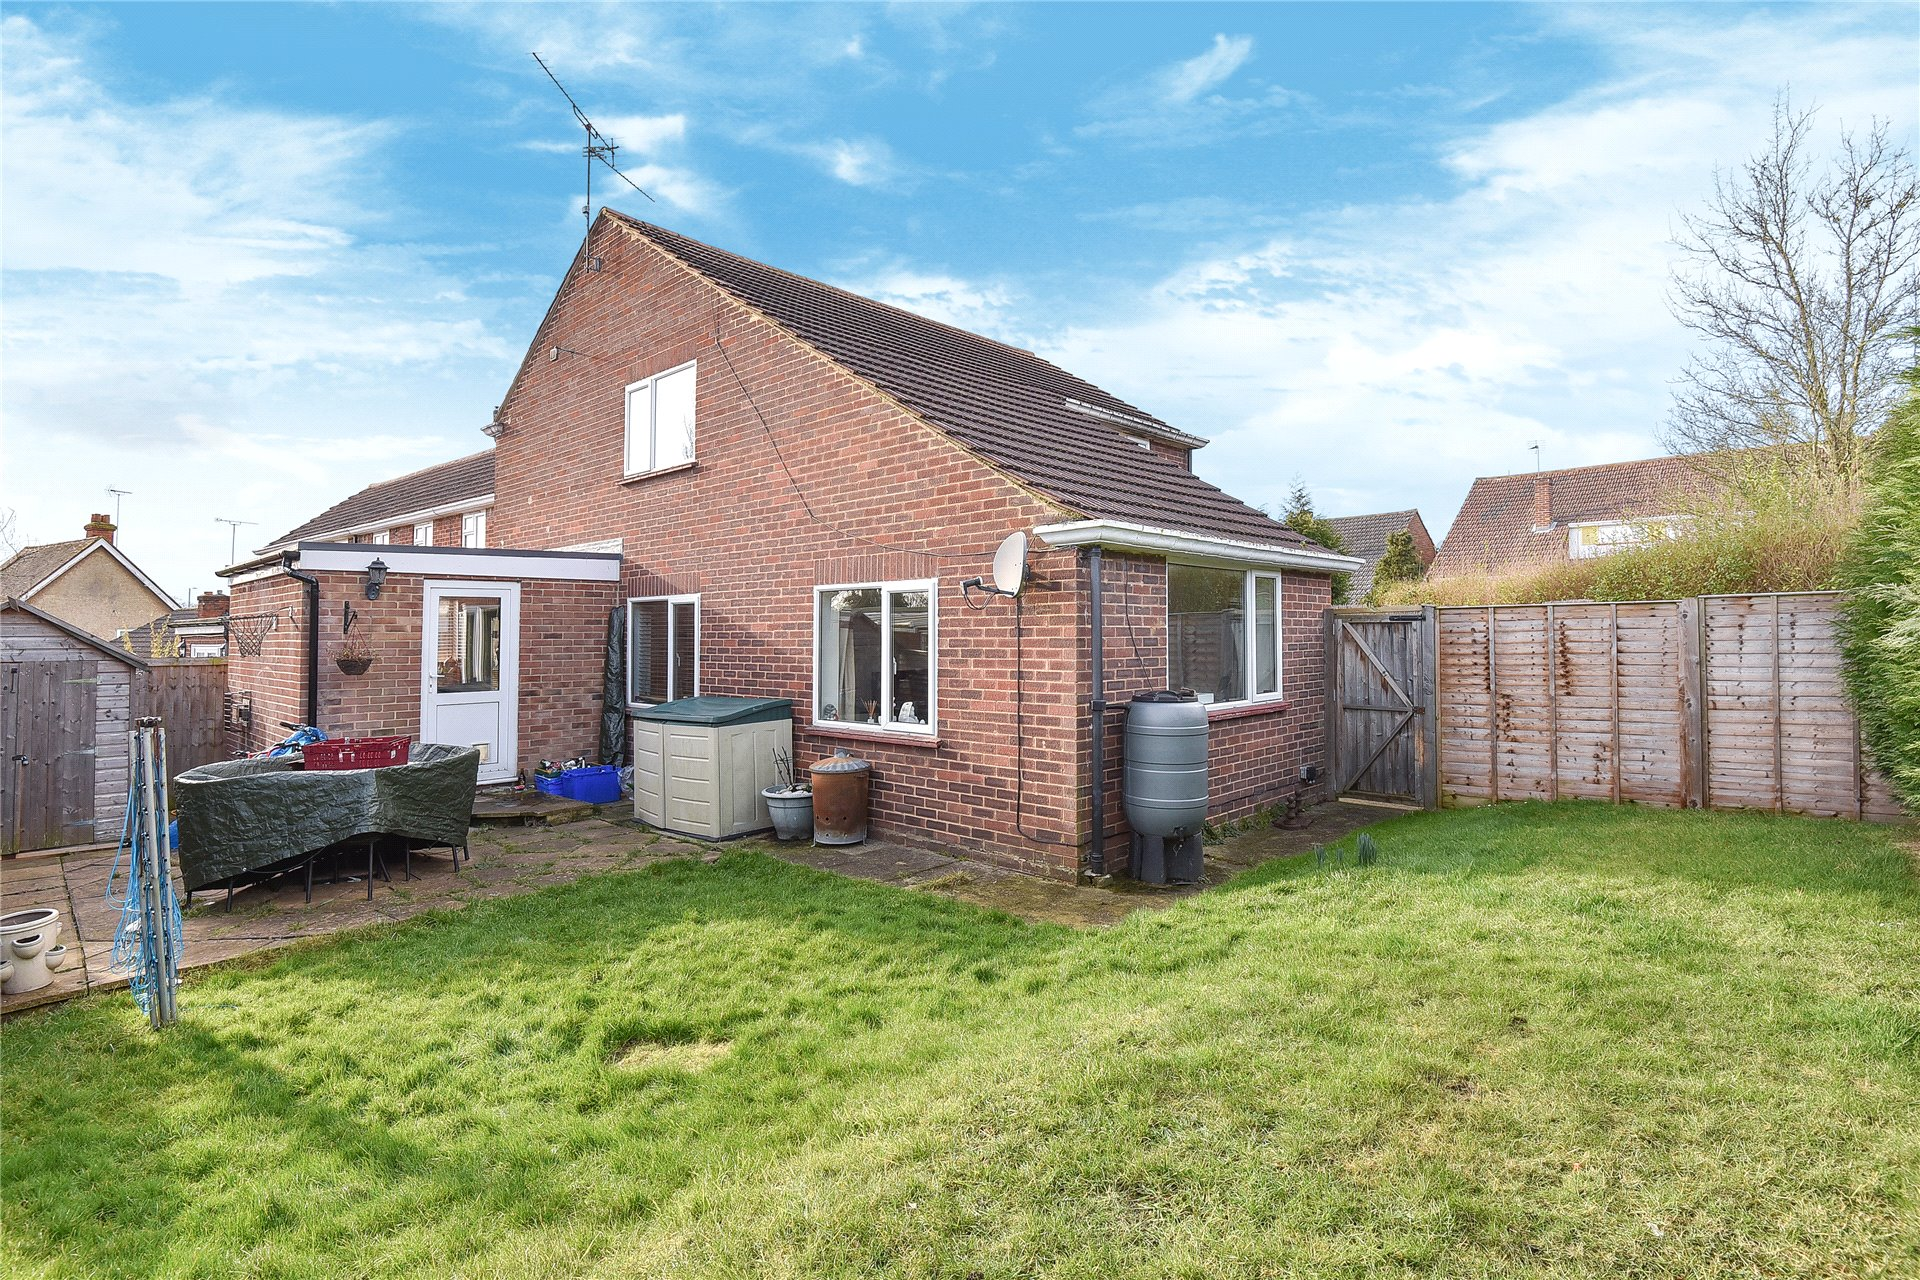 3 Bedrooms Detached House for sale in Caves Farm Close, Sandhurst, Berkshire, GU47